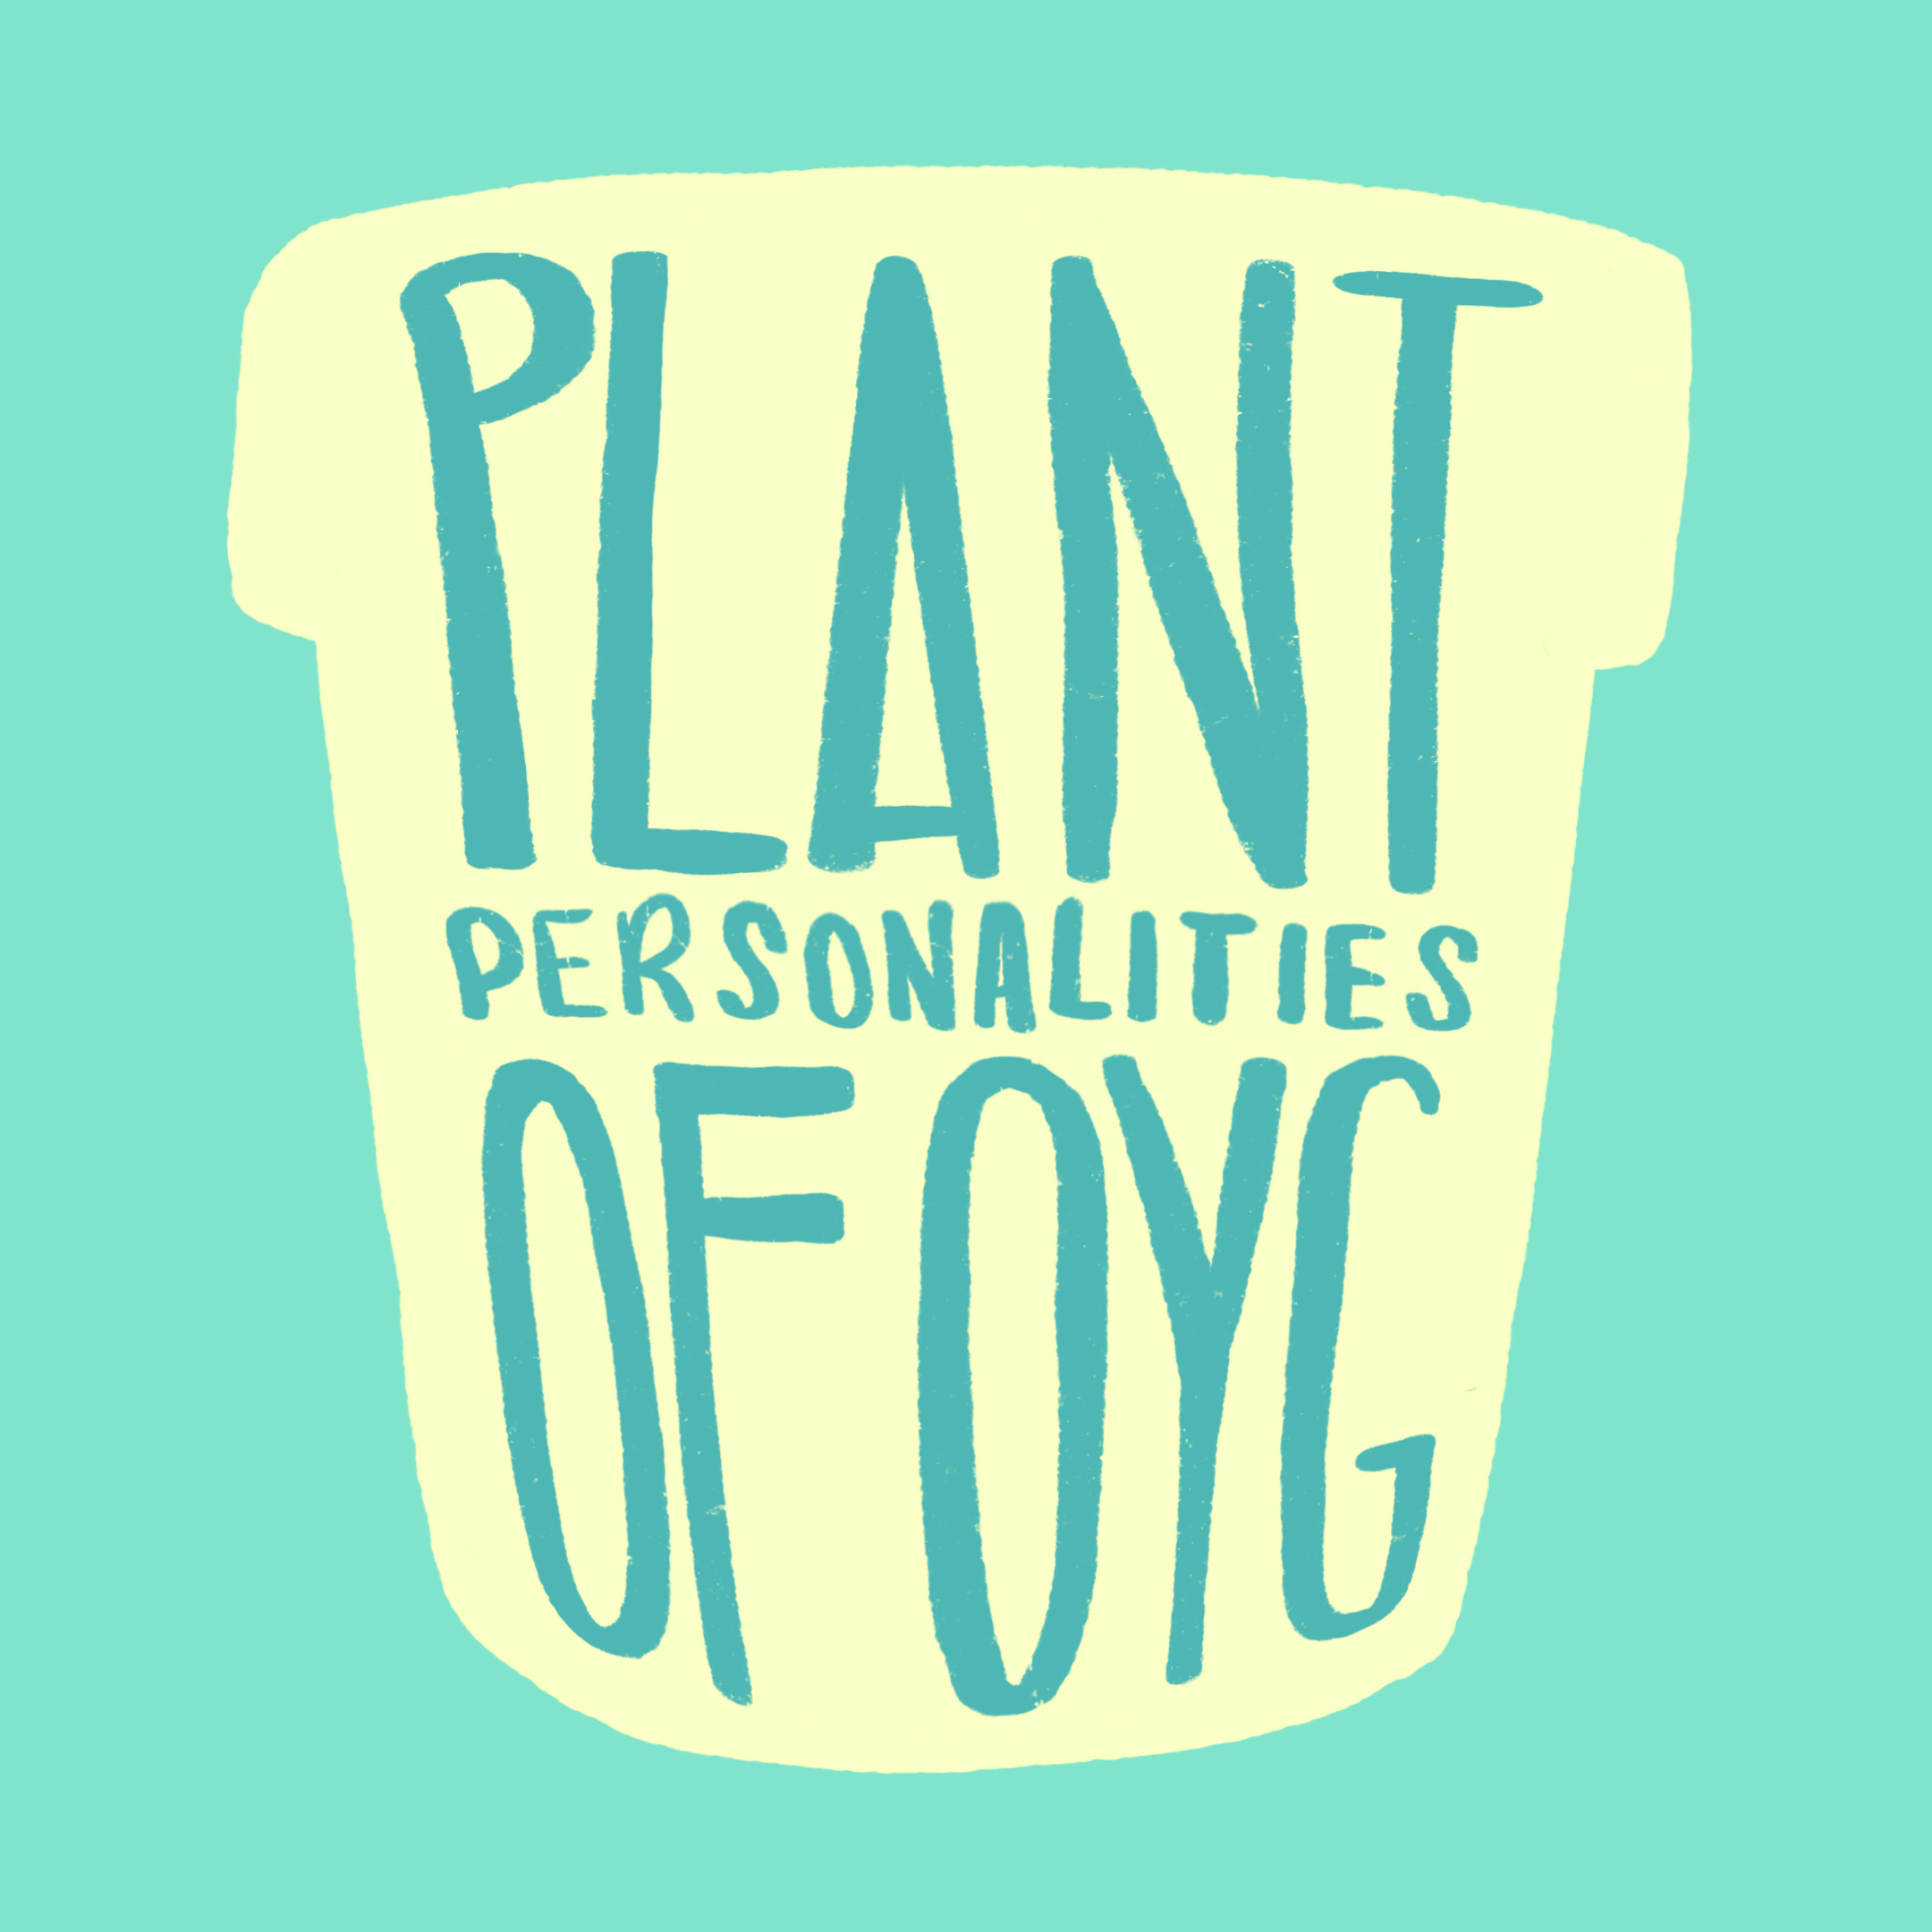 PlantPersonalities_00_Cover.jpg